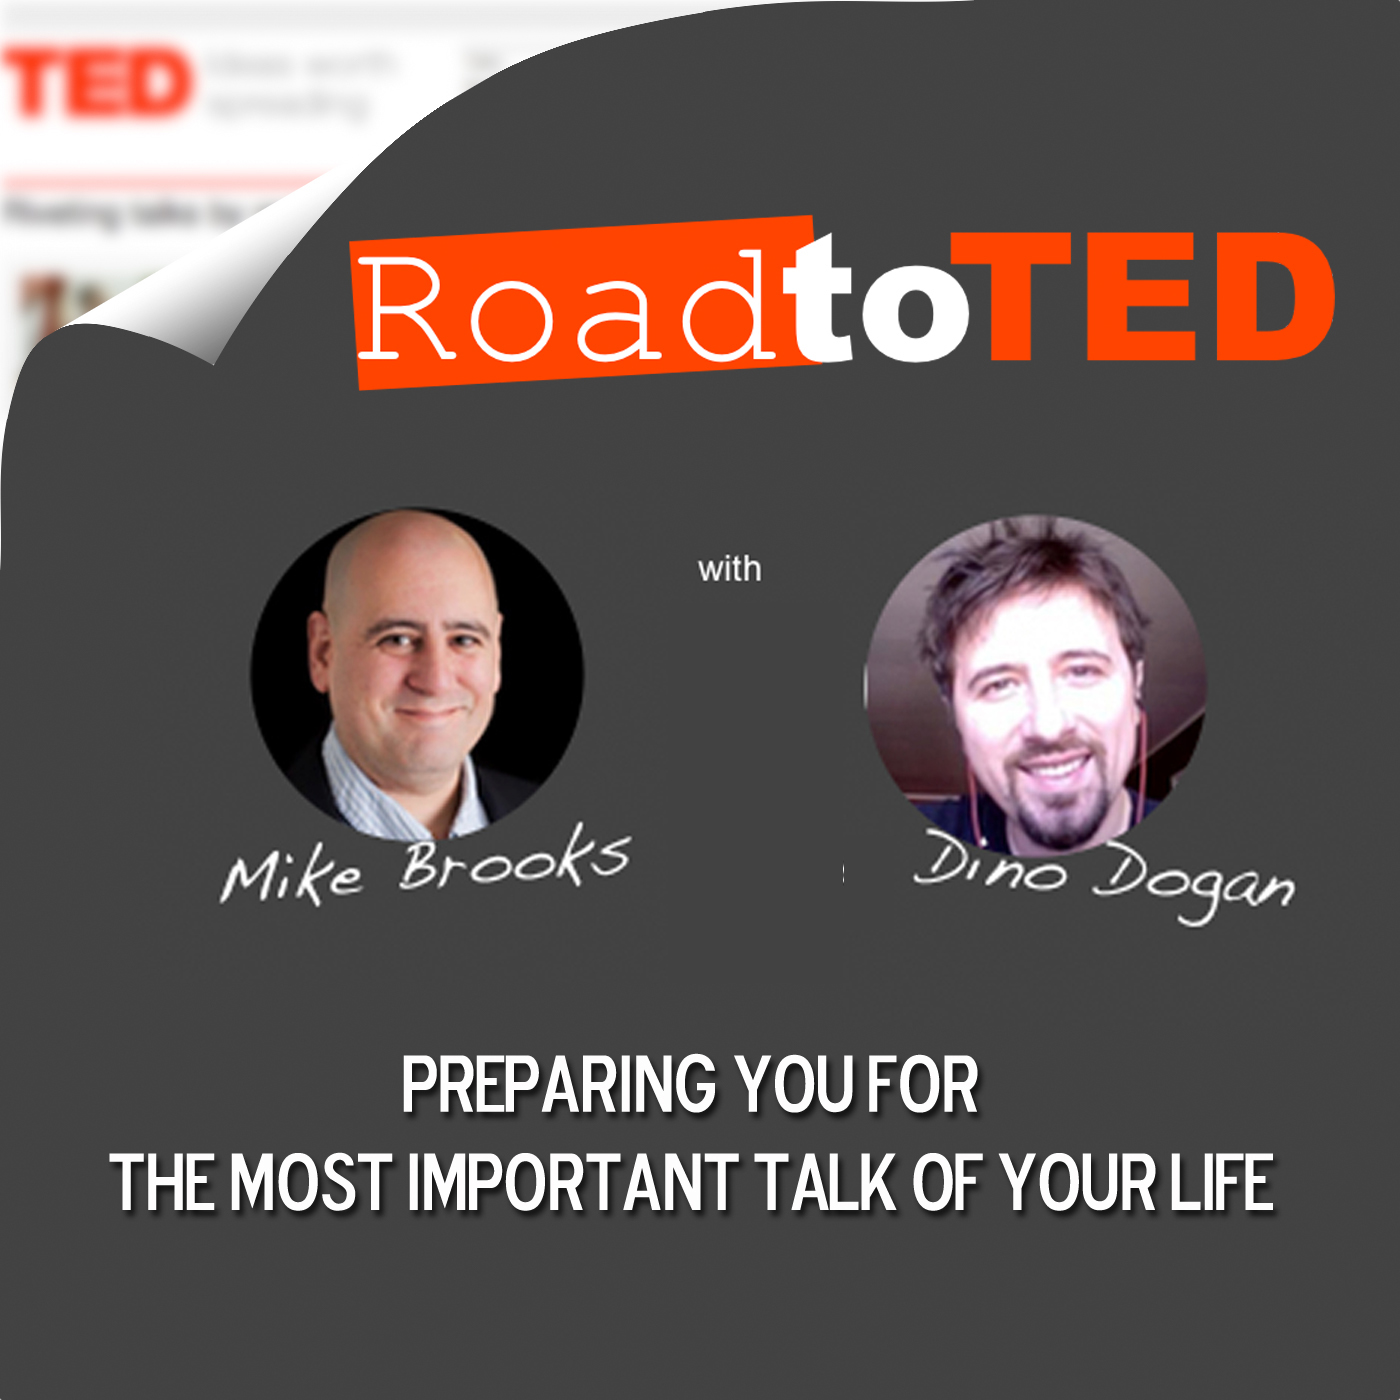 Road To TED | Public Speaking / TED Talks / TEDx / Toastmasters / Business Speaking / Mike Brooks And Dino Dogan